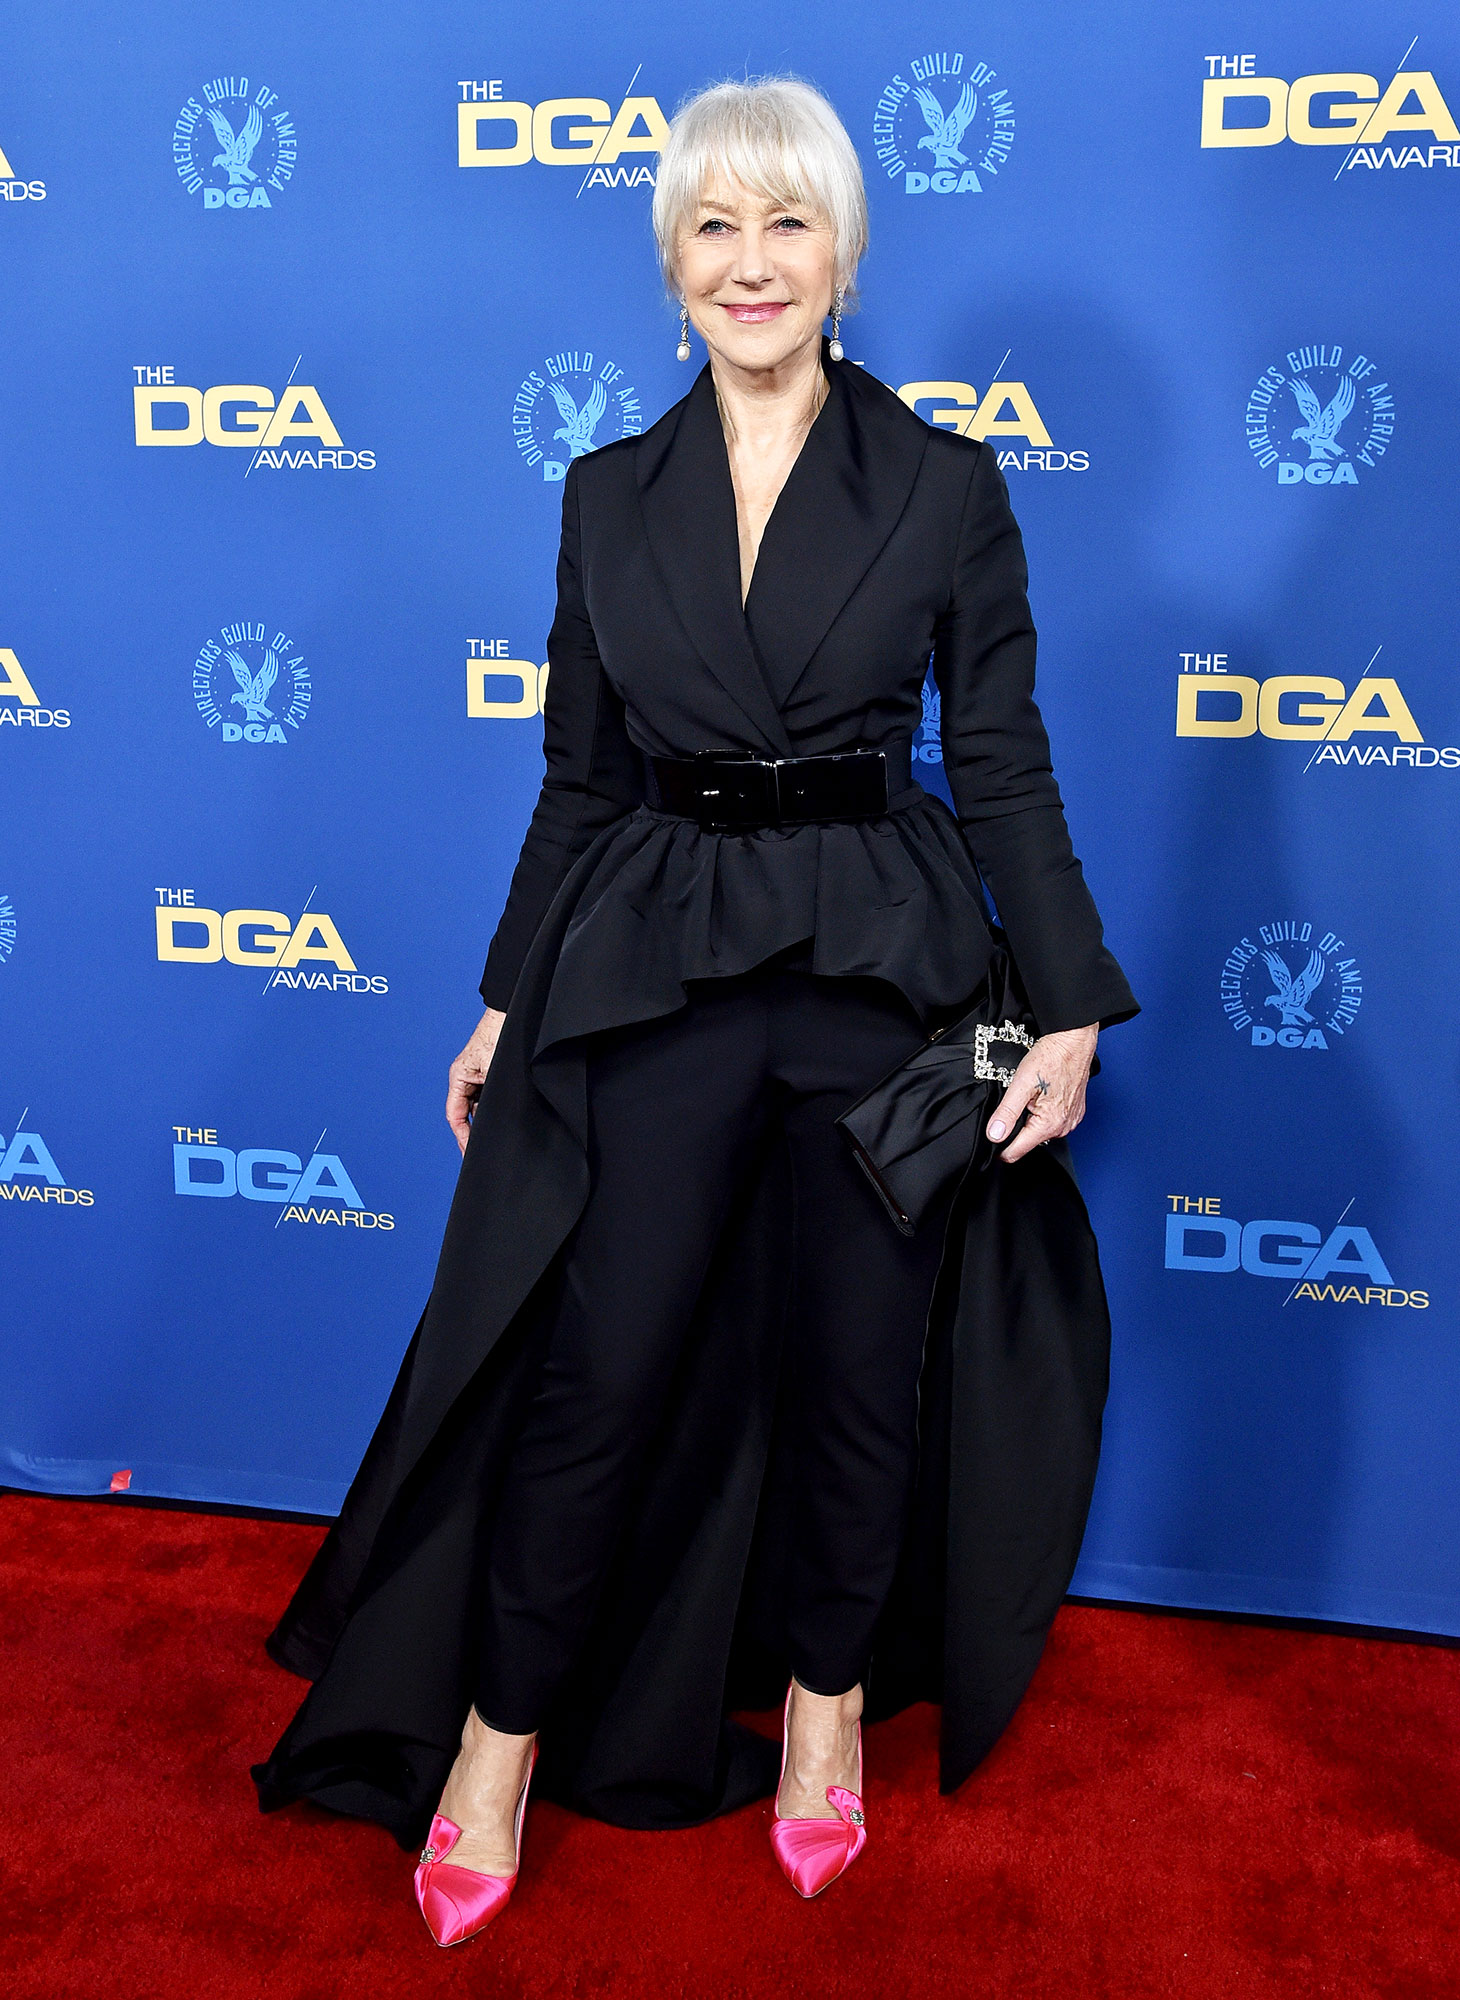 Helen Mirren attends the 71st Annual Directors Guild of America Awards at The Ray Dolby Ballroom at Hollywood - The dame proved she's still got it in a fabulous Brandon Maxwell number and pink pumps for the perfect bit of pop.